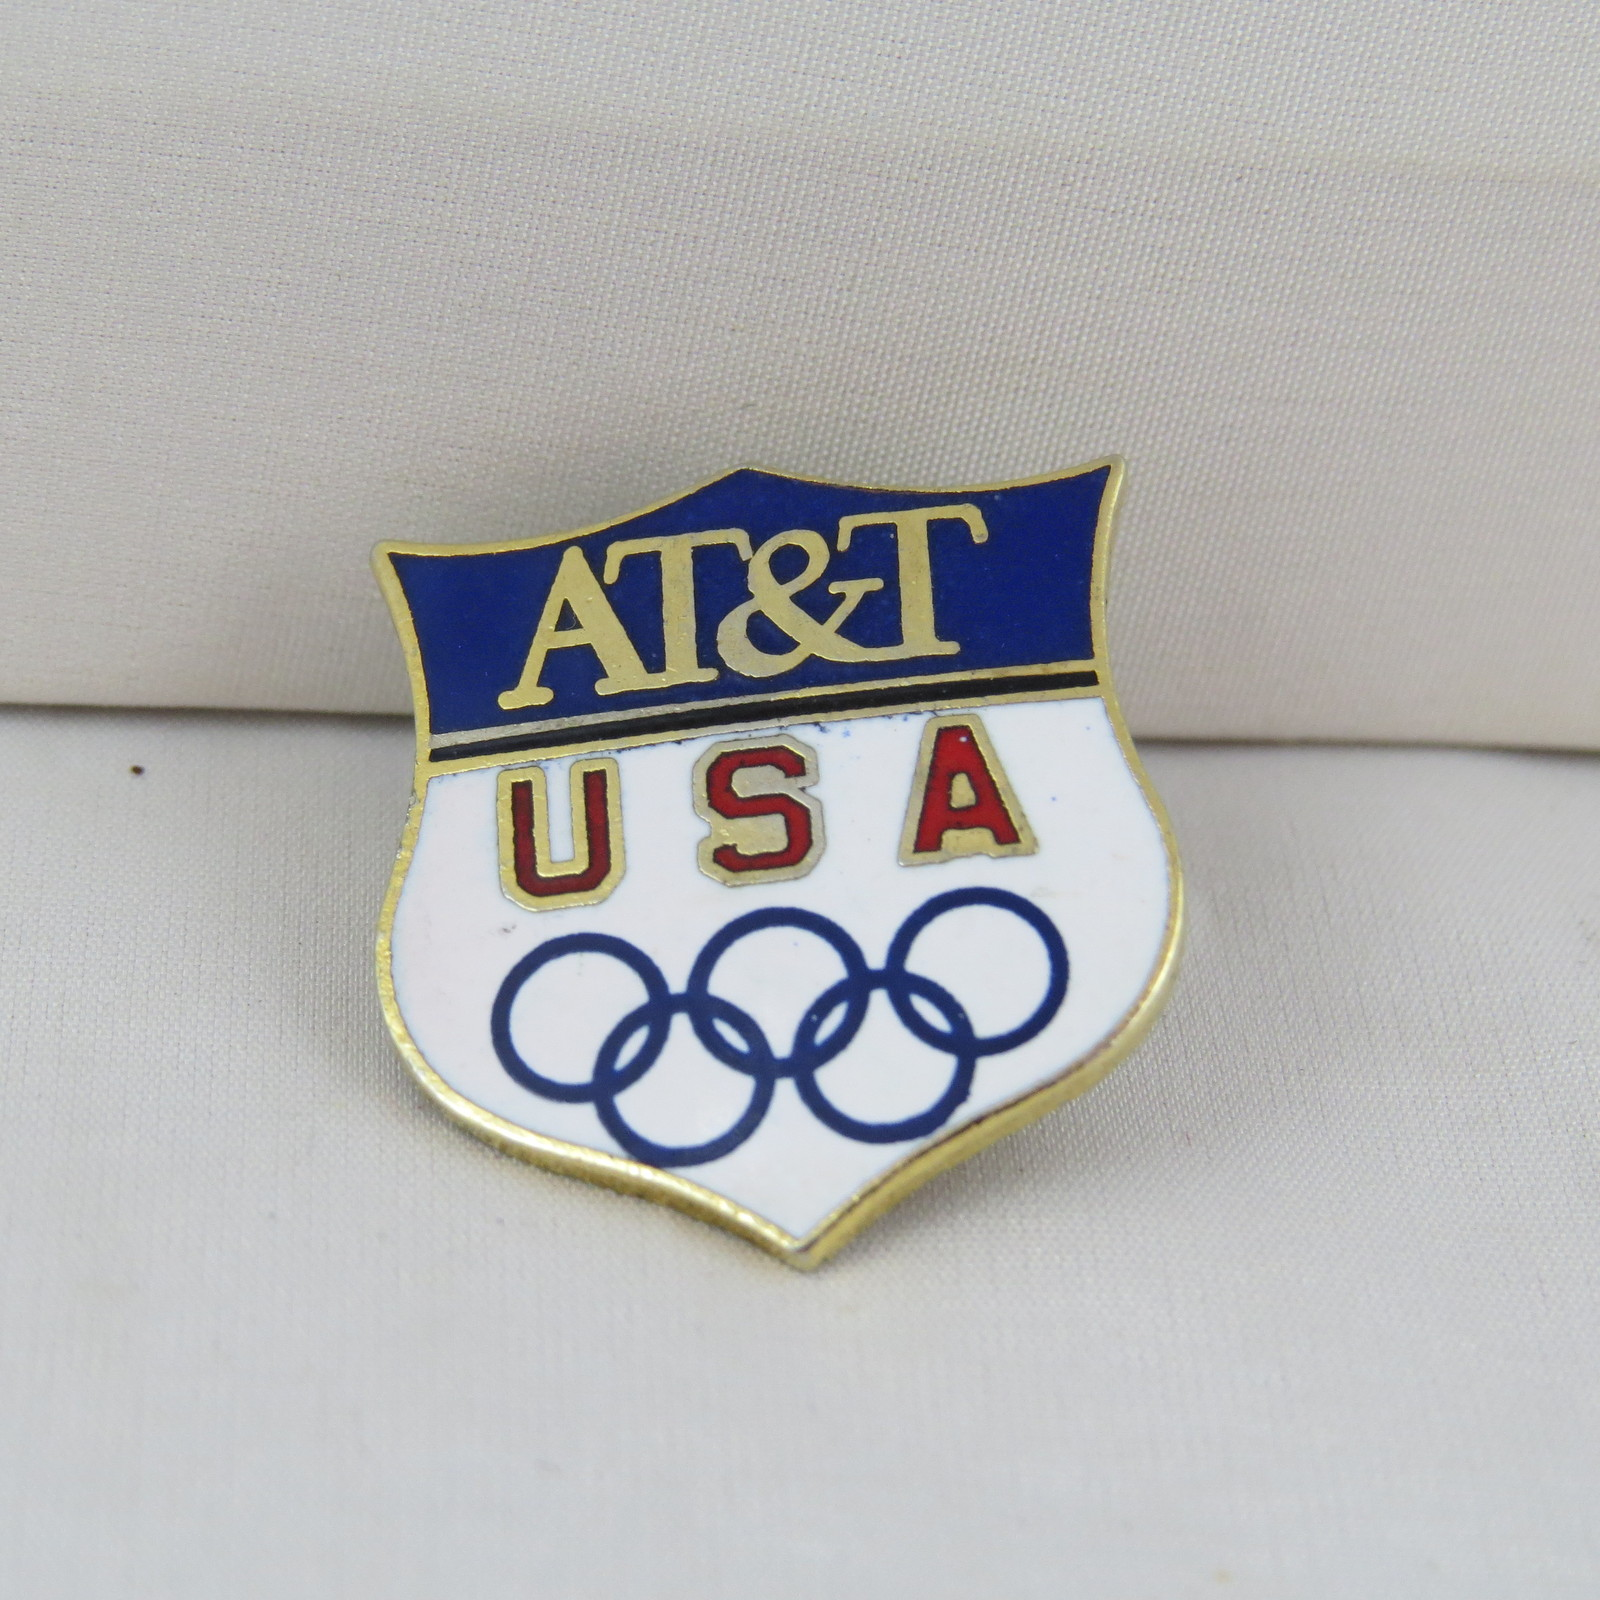 Primary image for 1988 Winter Olympic Games Pin - Team USA - AT&T Sponsor Pin - Shield Design